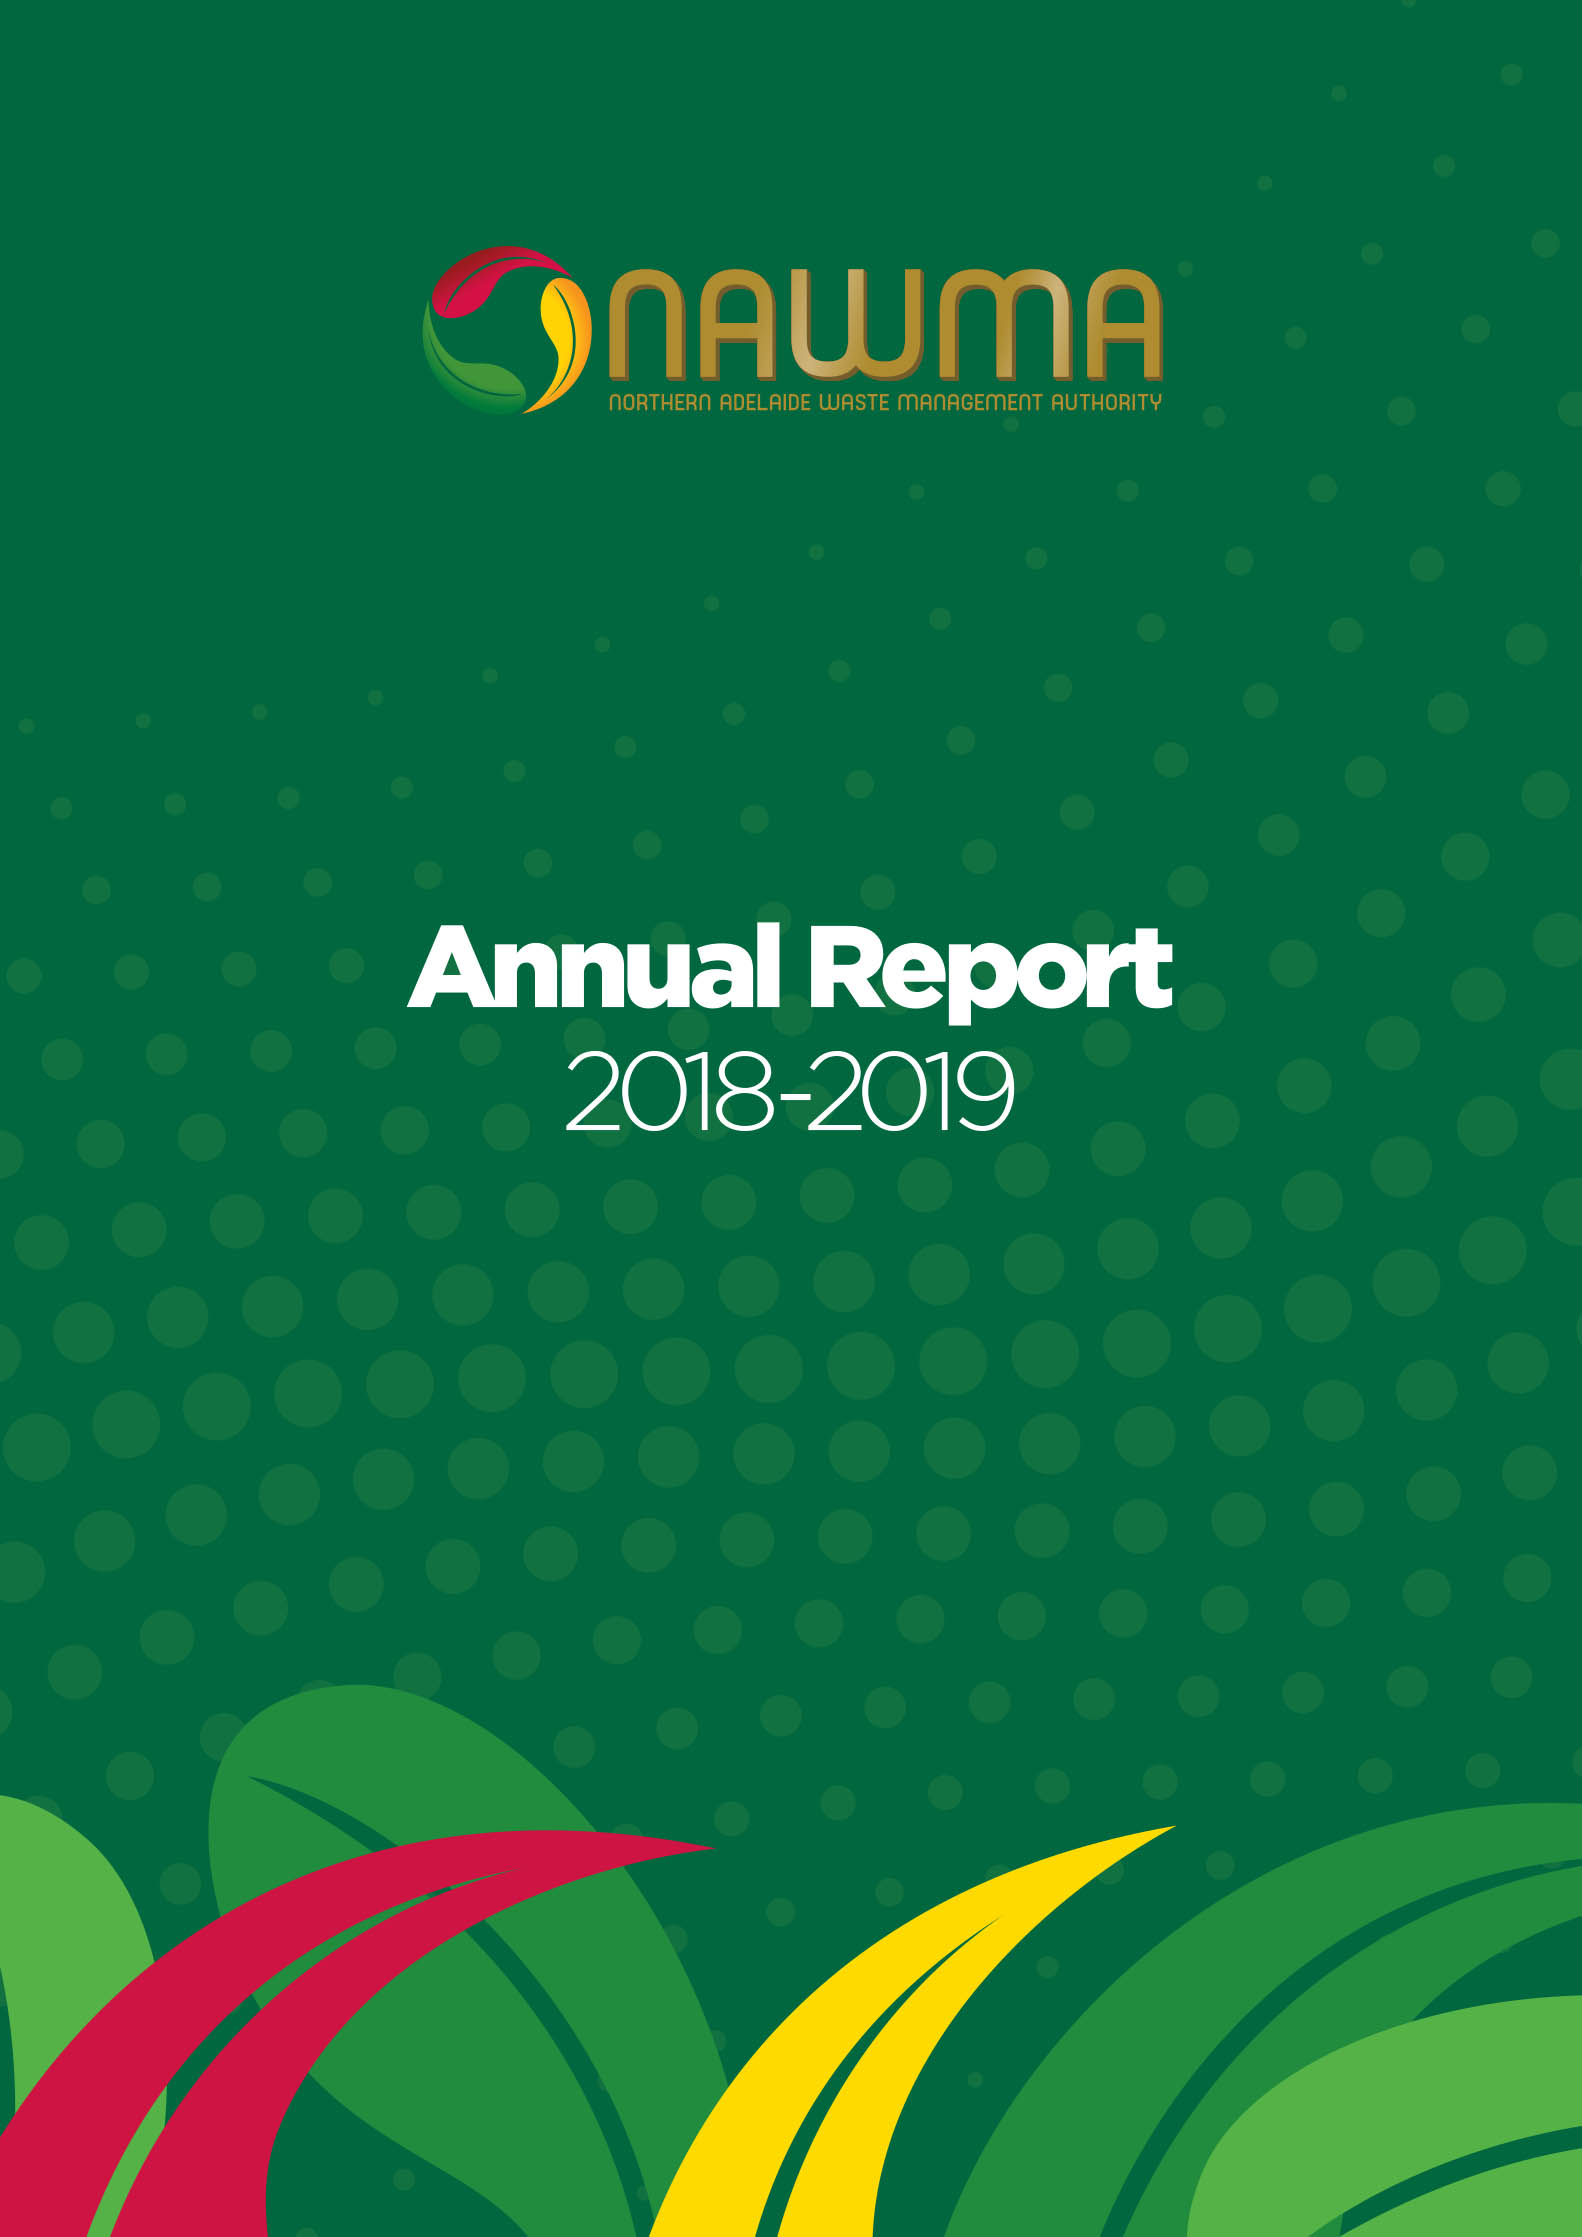 NAWMA Annual Report 2018-2019